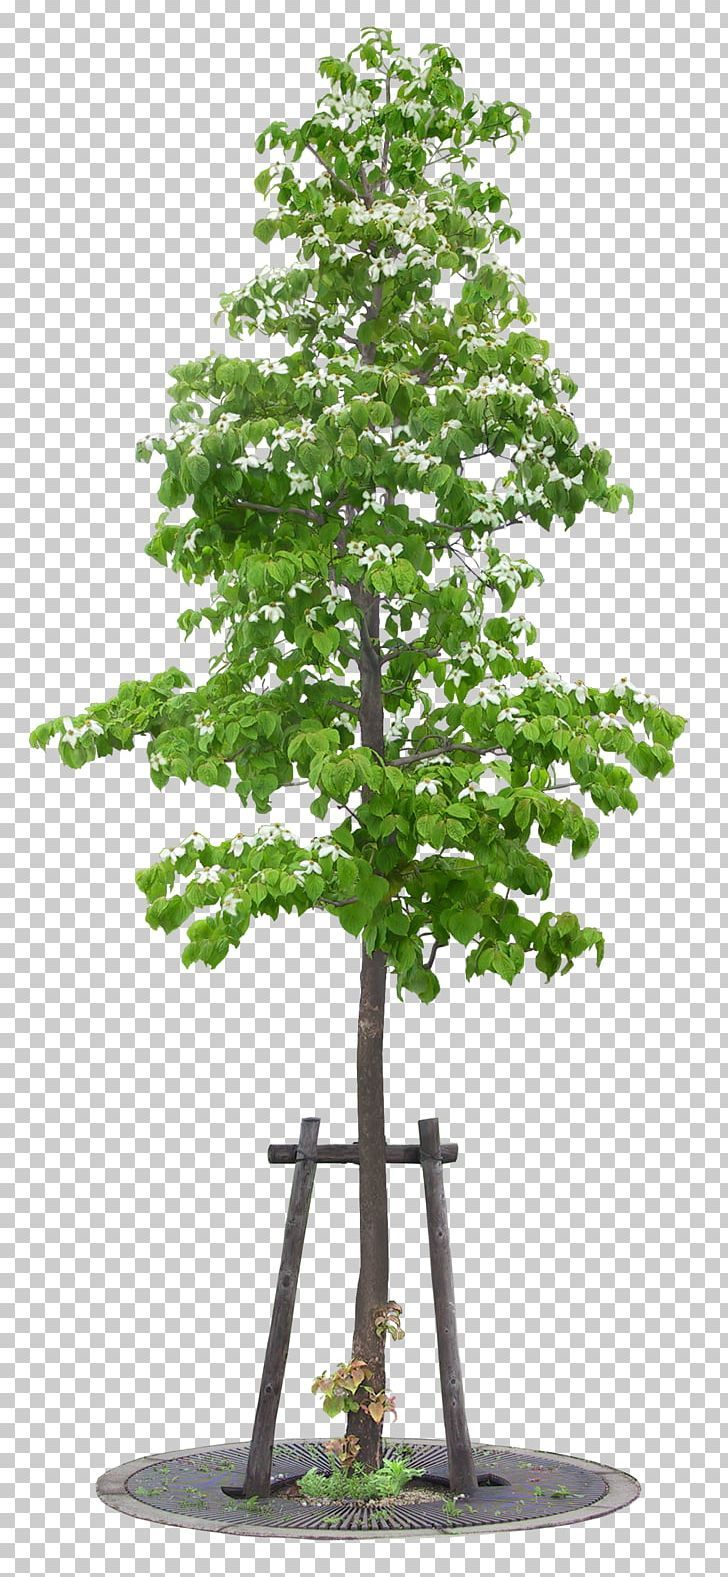 Tree Painting Png 3d Computer Graphics Big Bonsai Branch Christmas Tree Tree Painting 3d Computer Graphics Computer Graphics